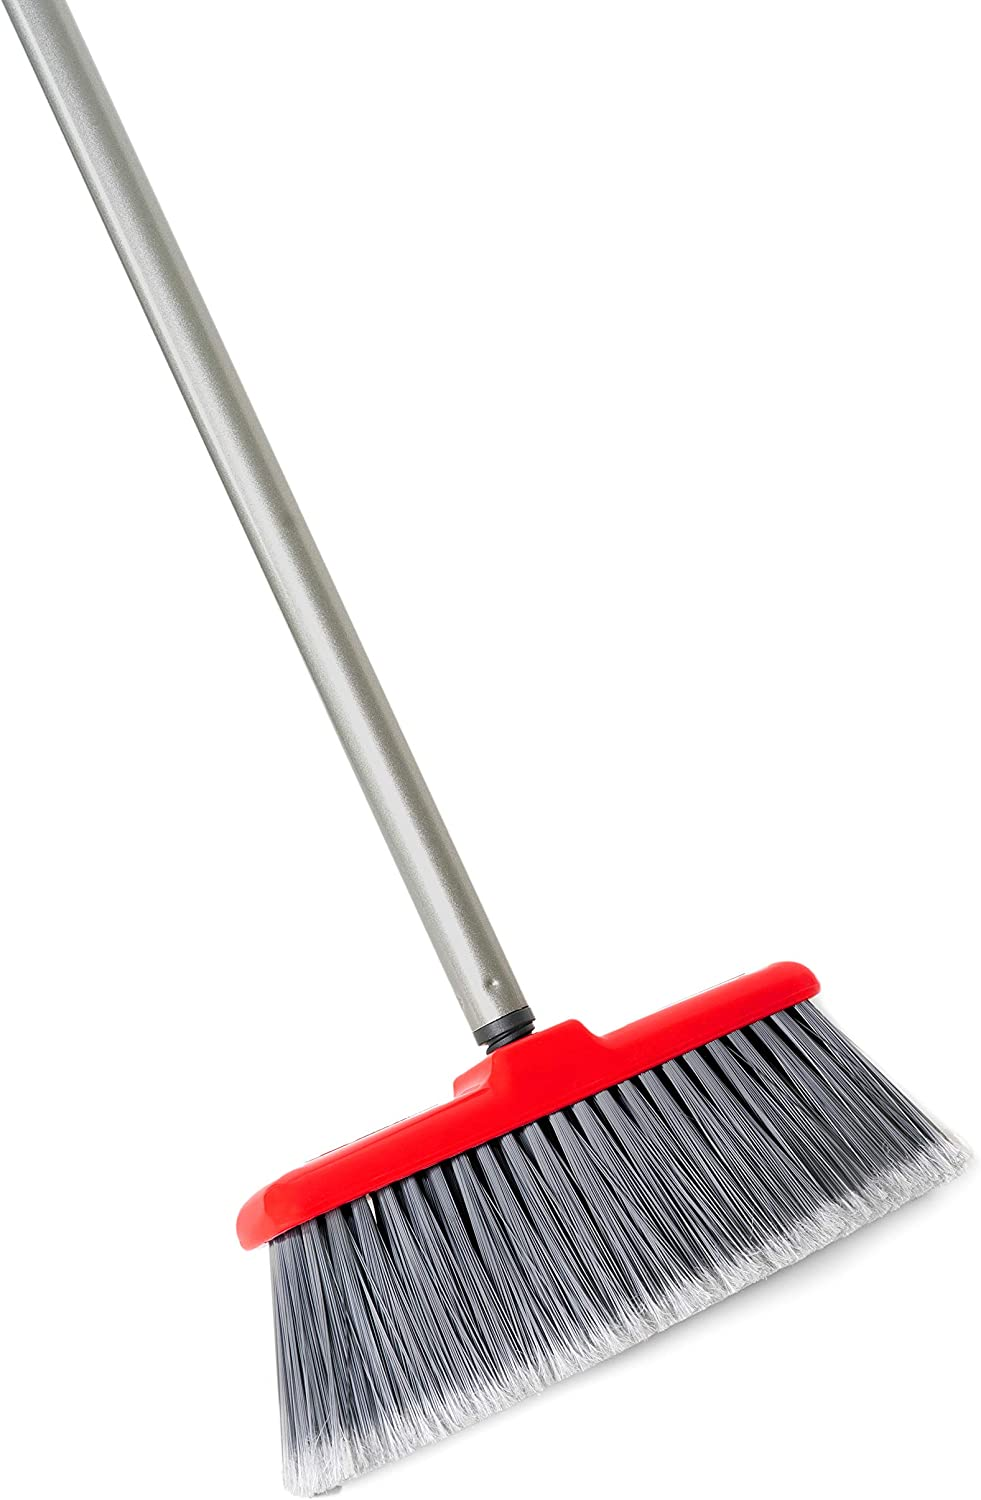 New Genuine Spid Soft Broom Home Cleaning Fast Floor Corners Sweeping Hand Brush